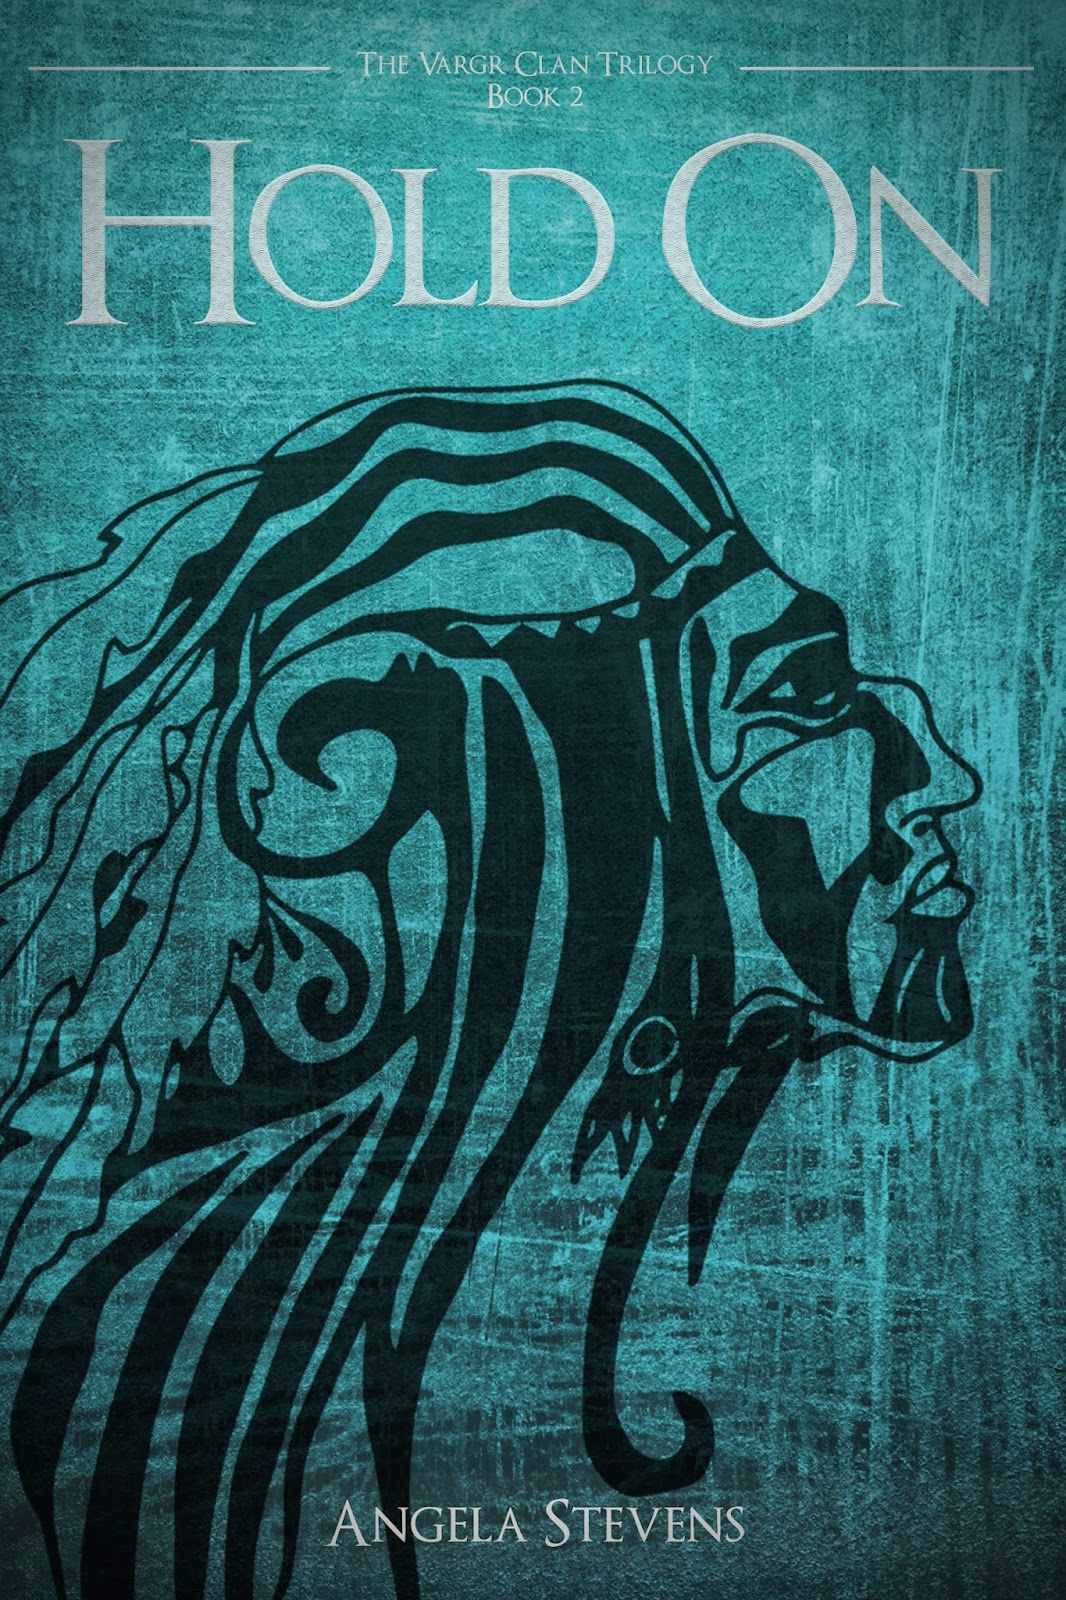 https://www.goodreads.com/book/show/24772209-hold-on